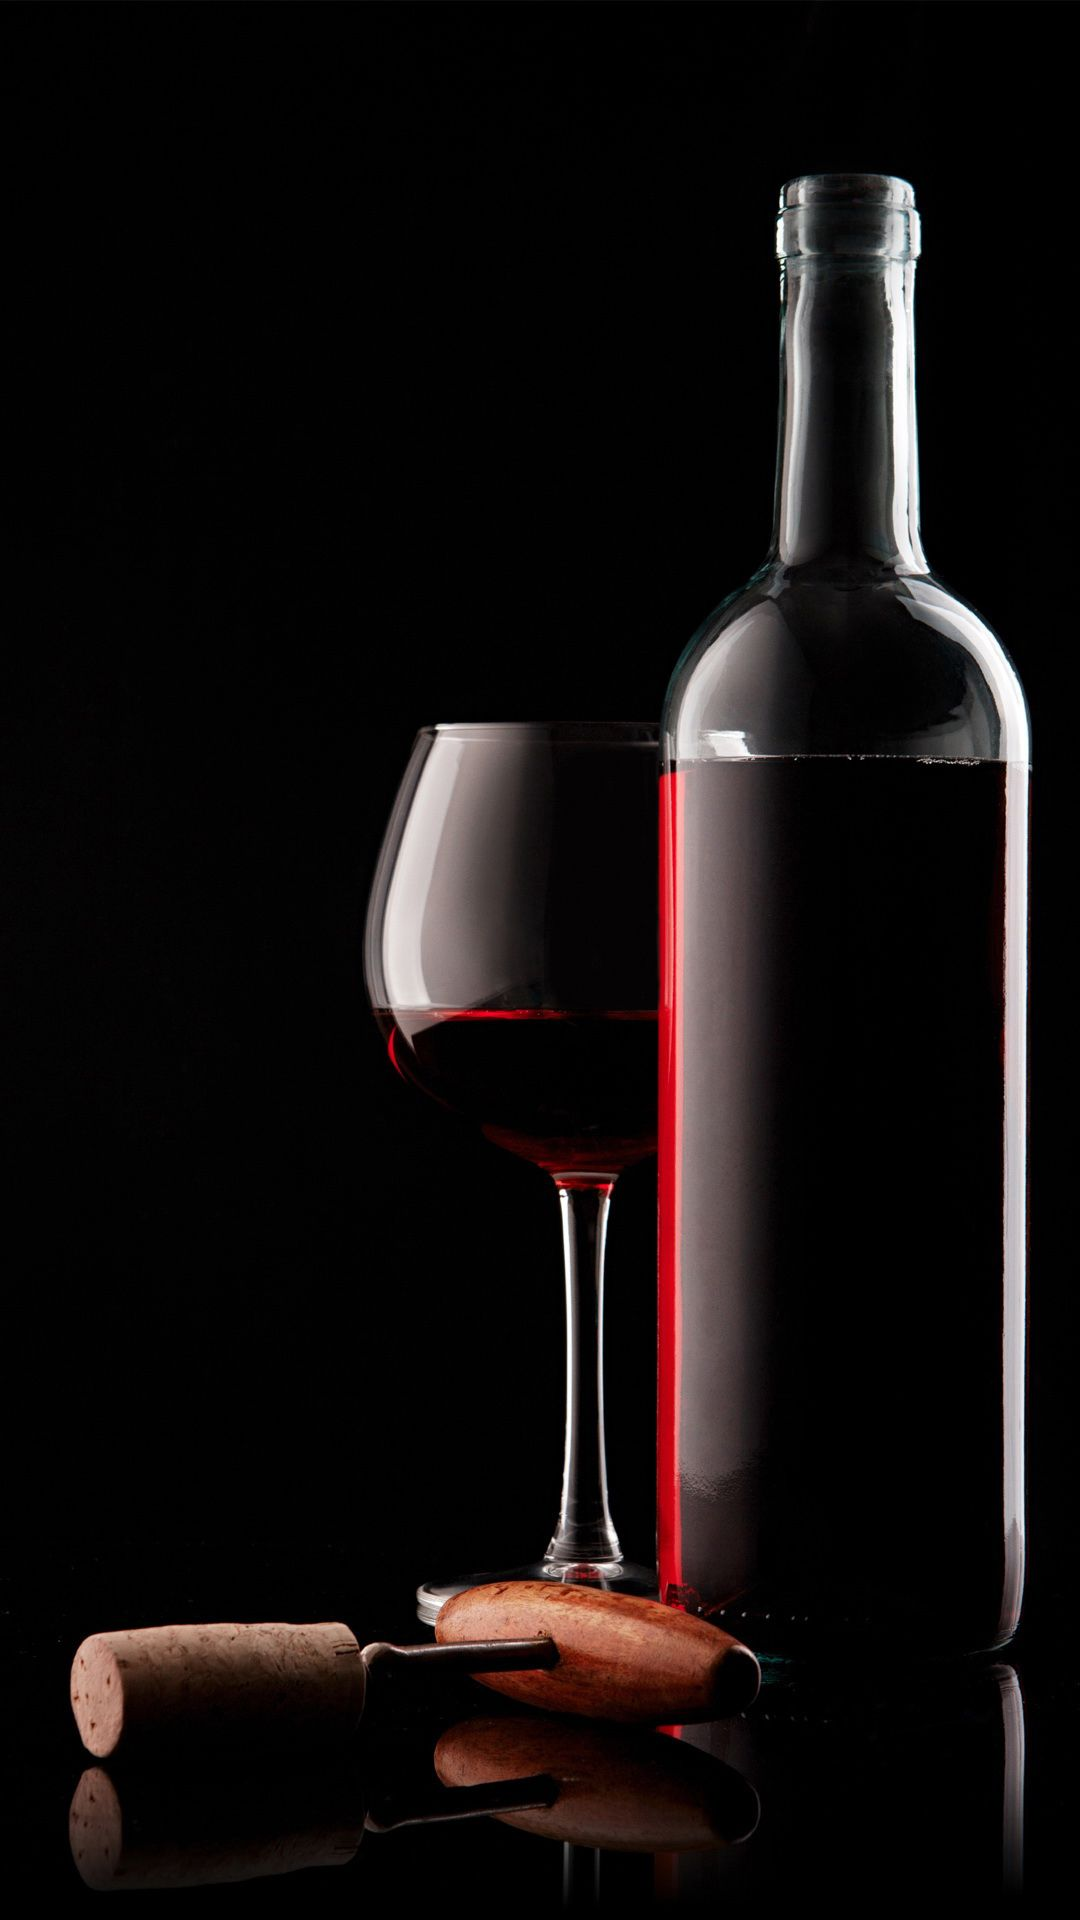 red wine bottle glass and corkscrew iphone 6 hd